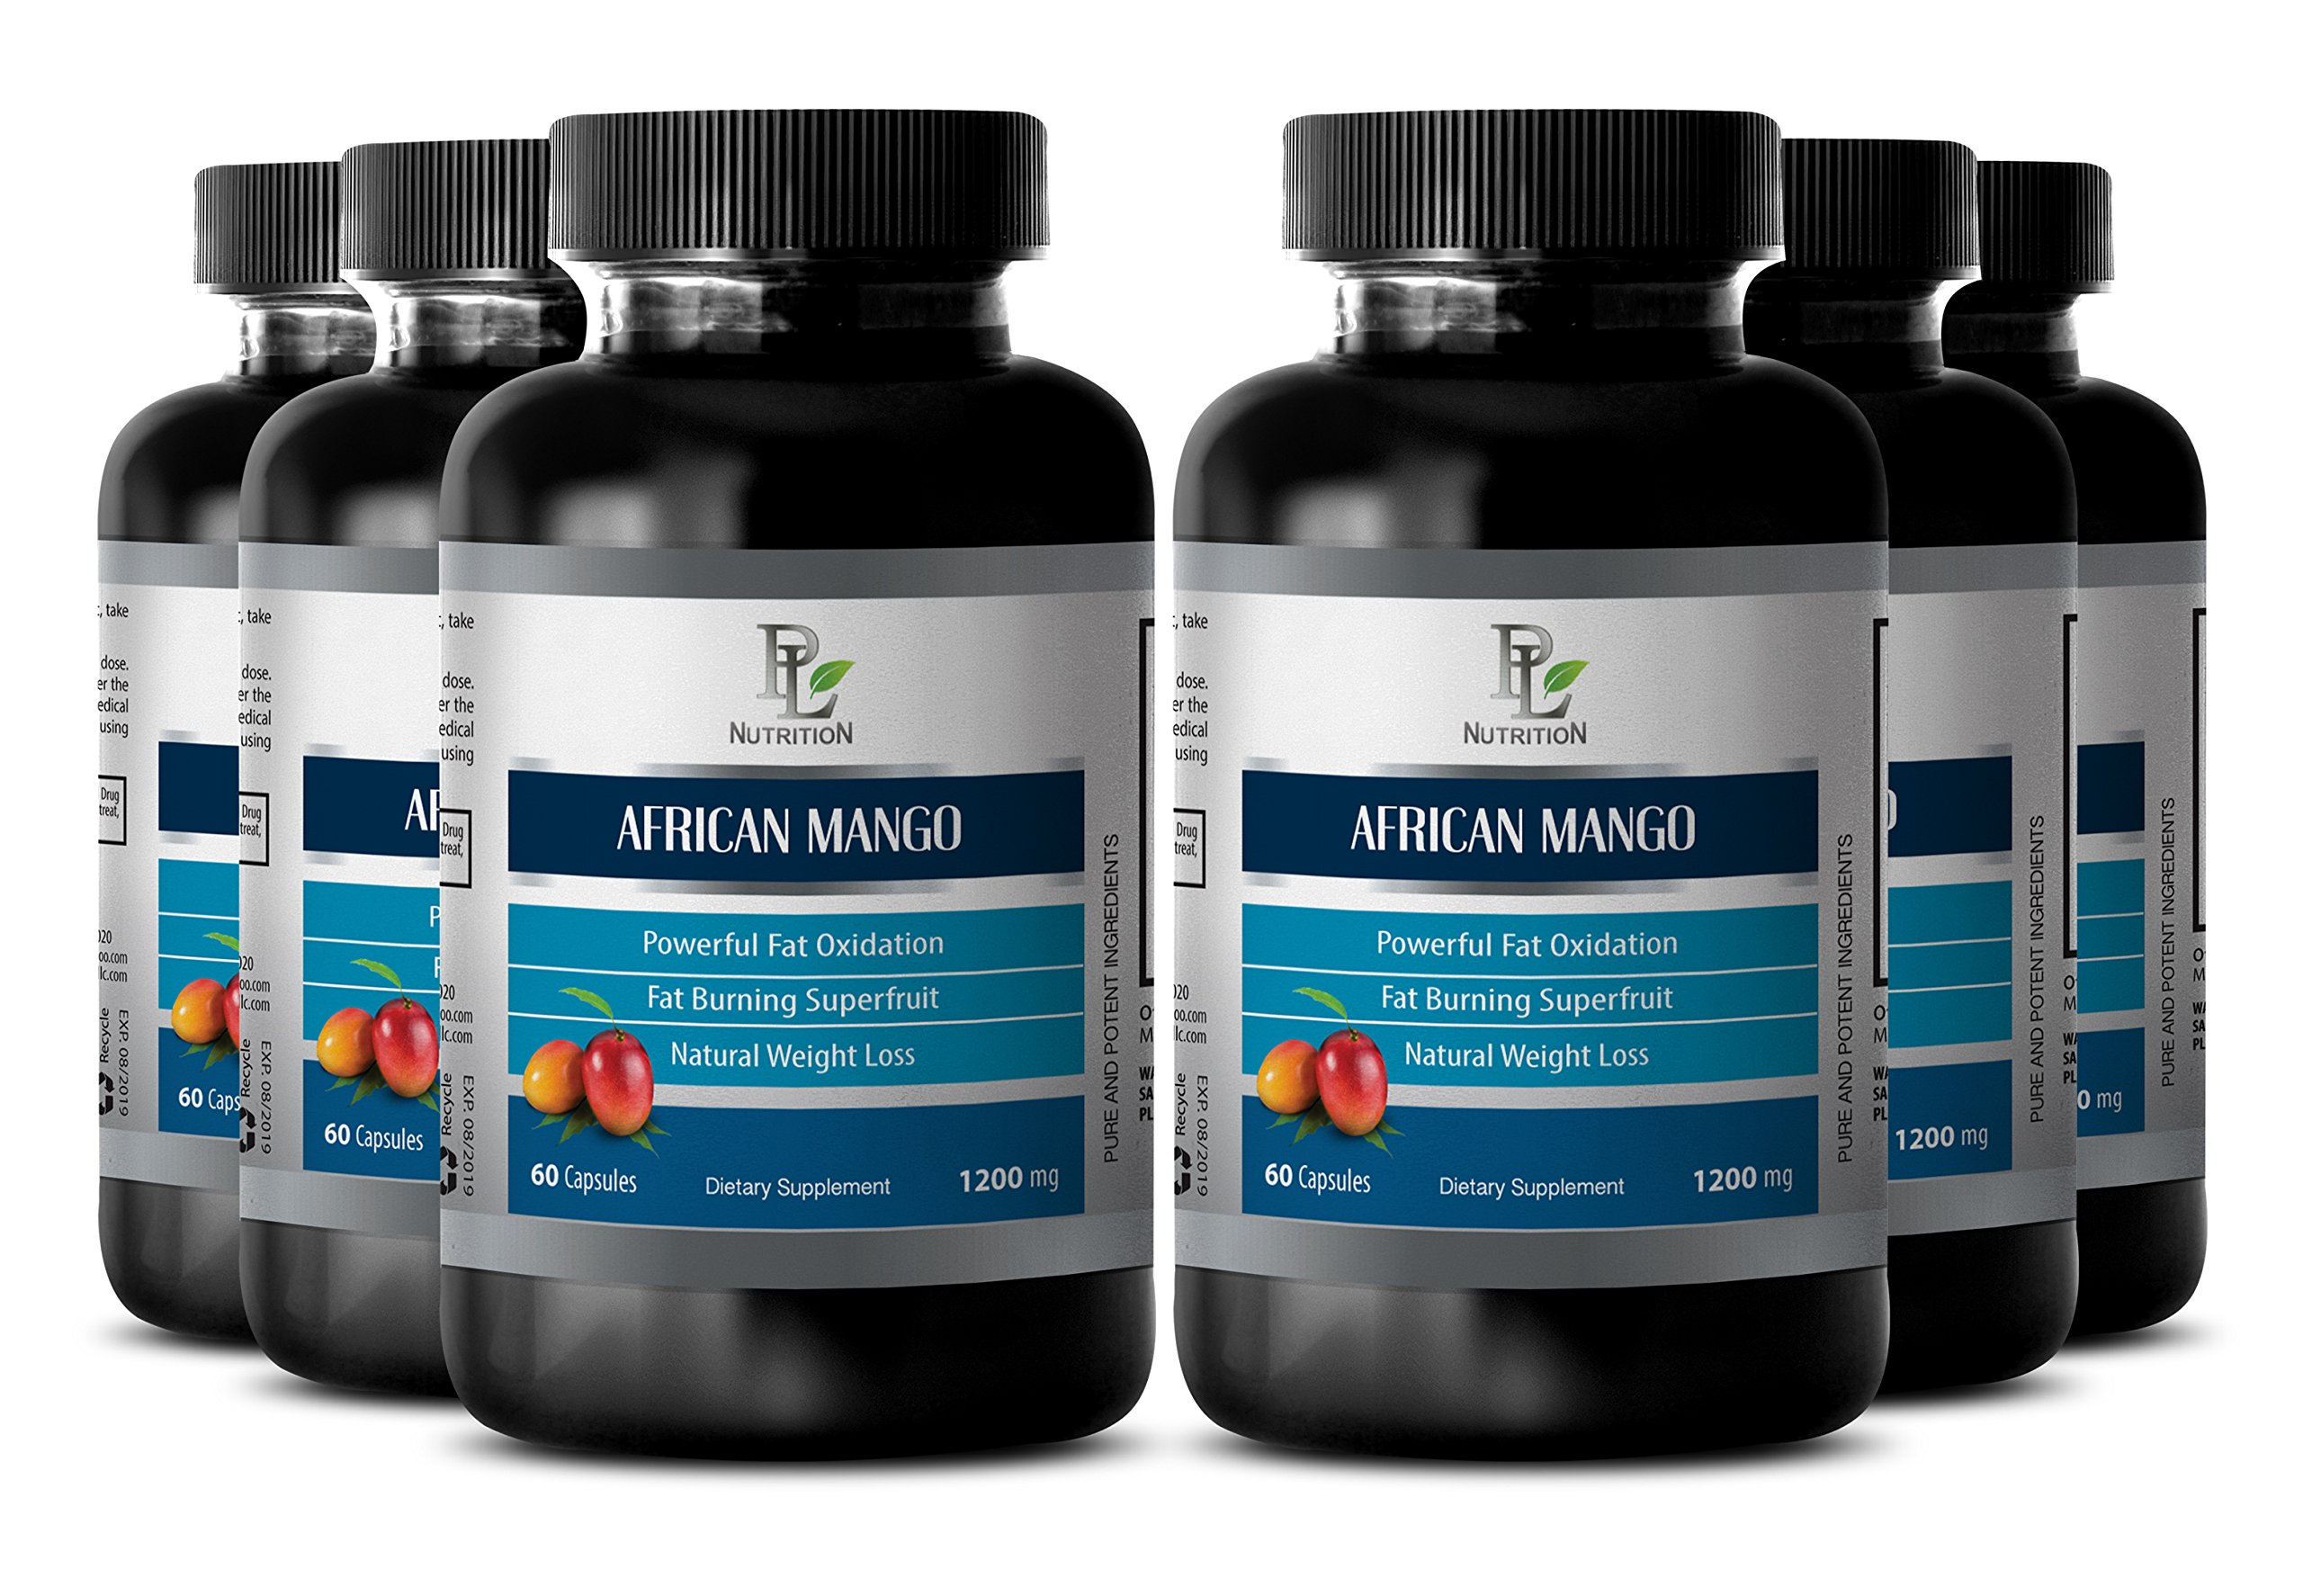 Sexual enhancement for couples - AFRICAN MANGO EXTRACT - Libido boosting - 6 Bottles 360 capsules